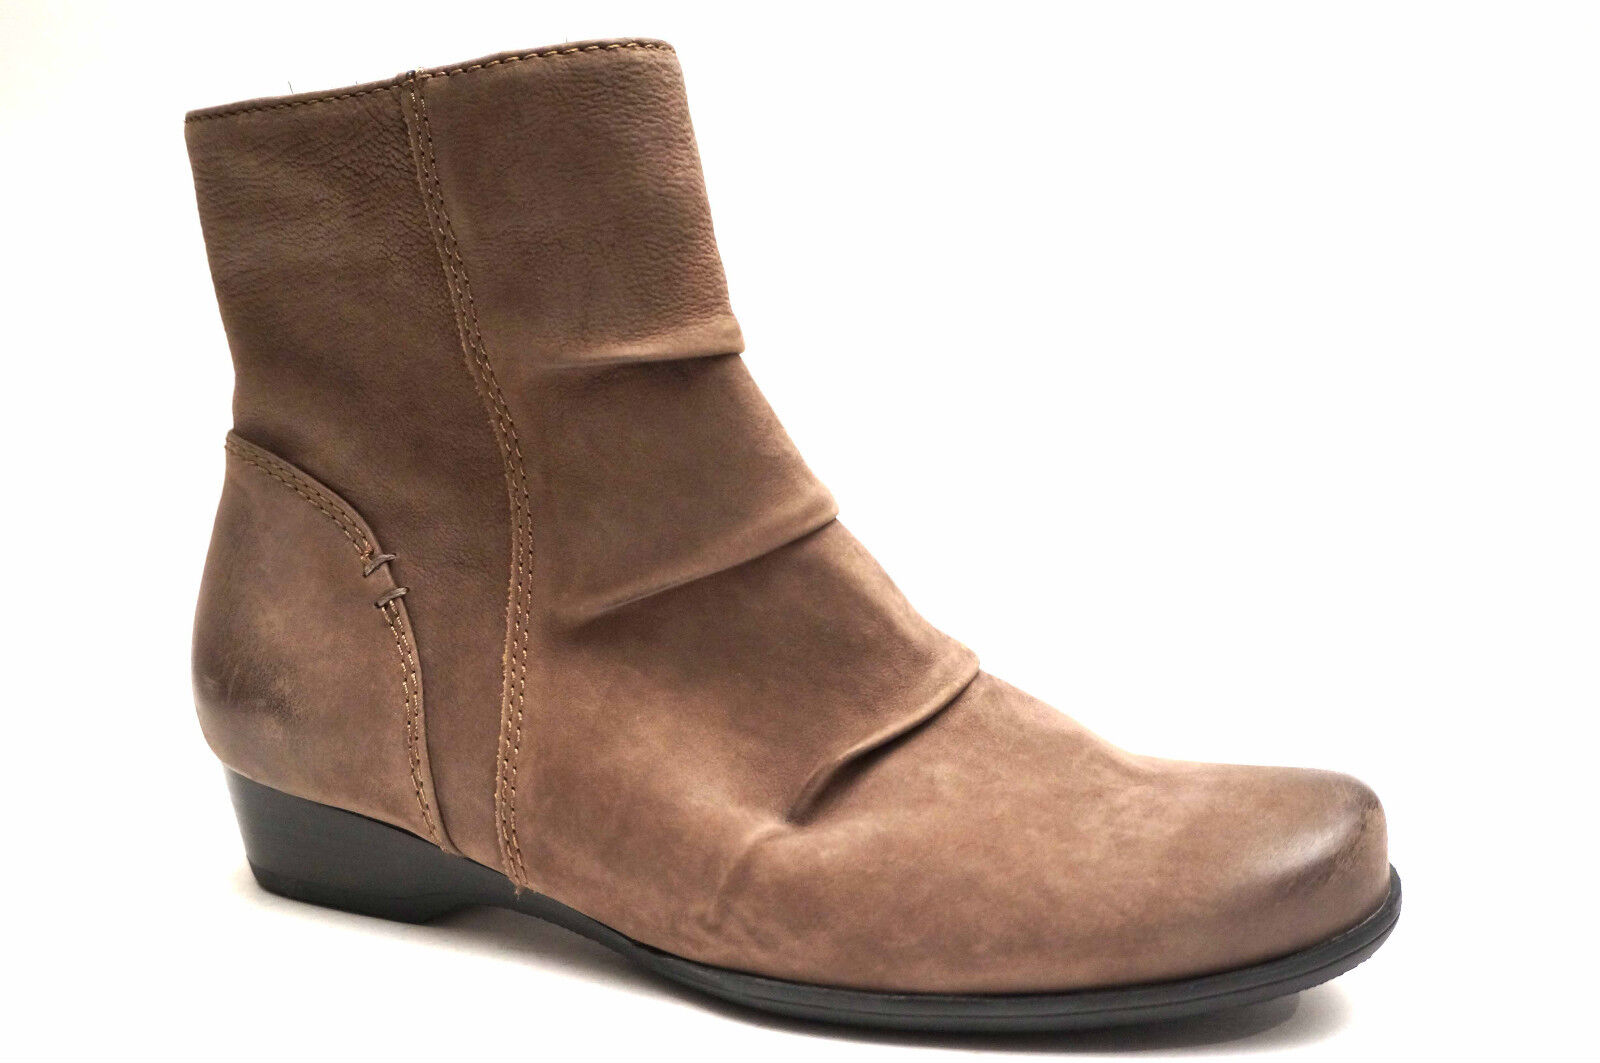 2341  Sioux shoes sporty Leather boots sz. 42,5 (UK 8,5) Mud Brown